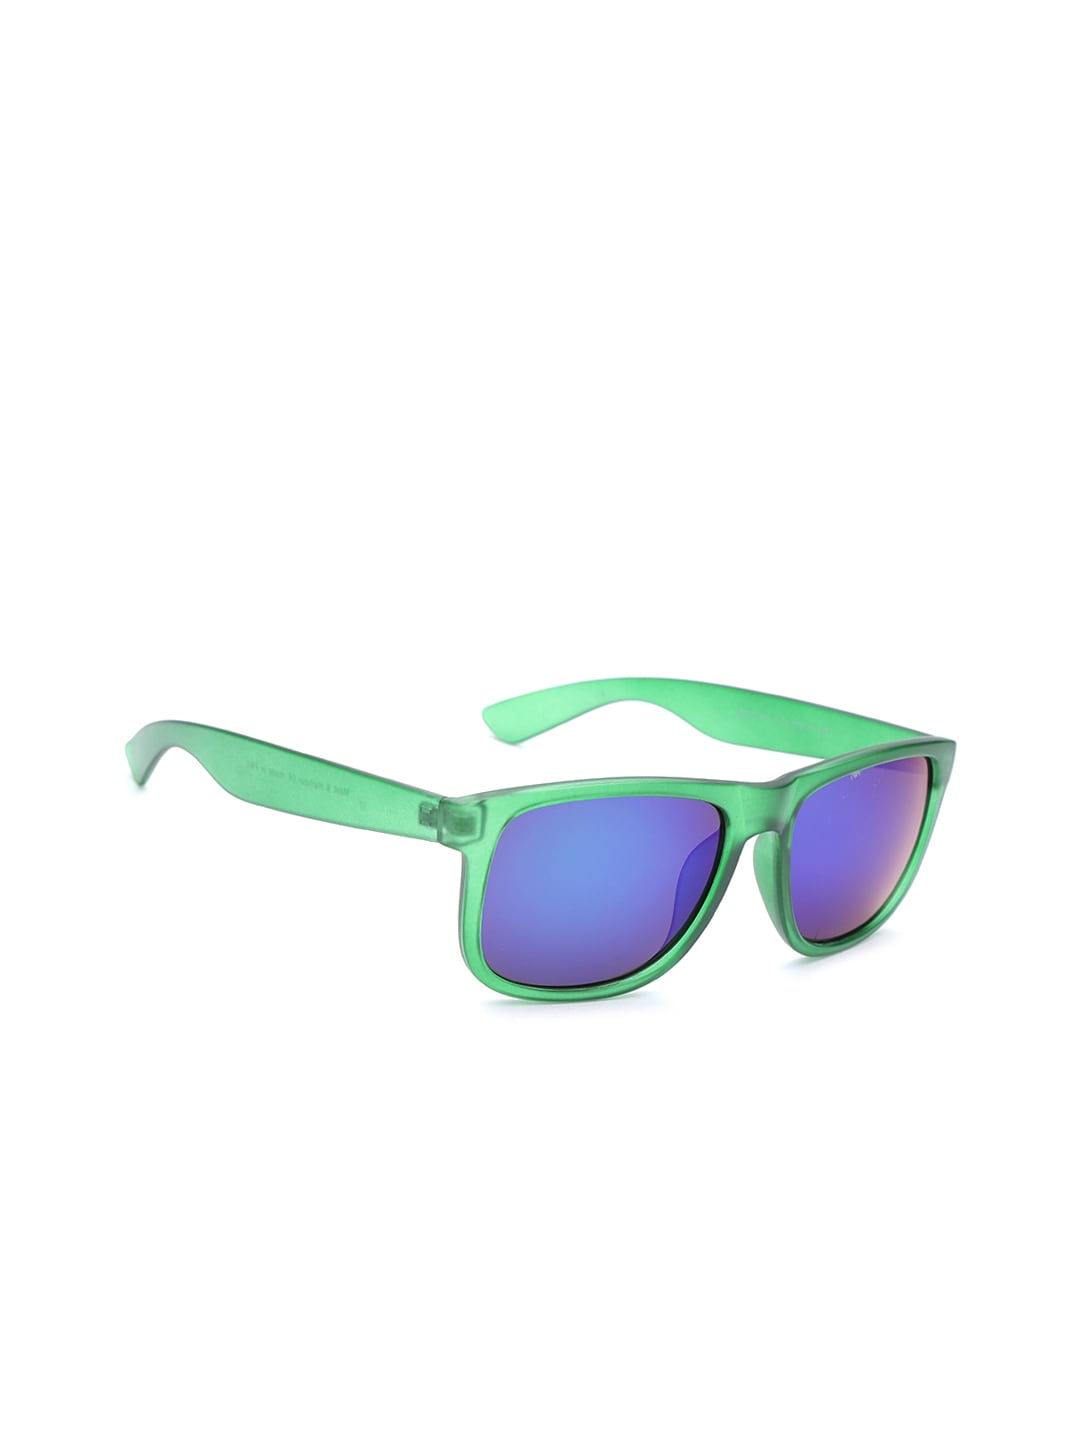 8879fc1e93 On Waist Pouch Sunglasses - Buy On Waist Pouch Sunglasses online in India